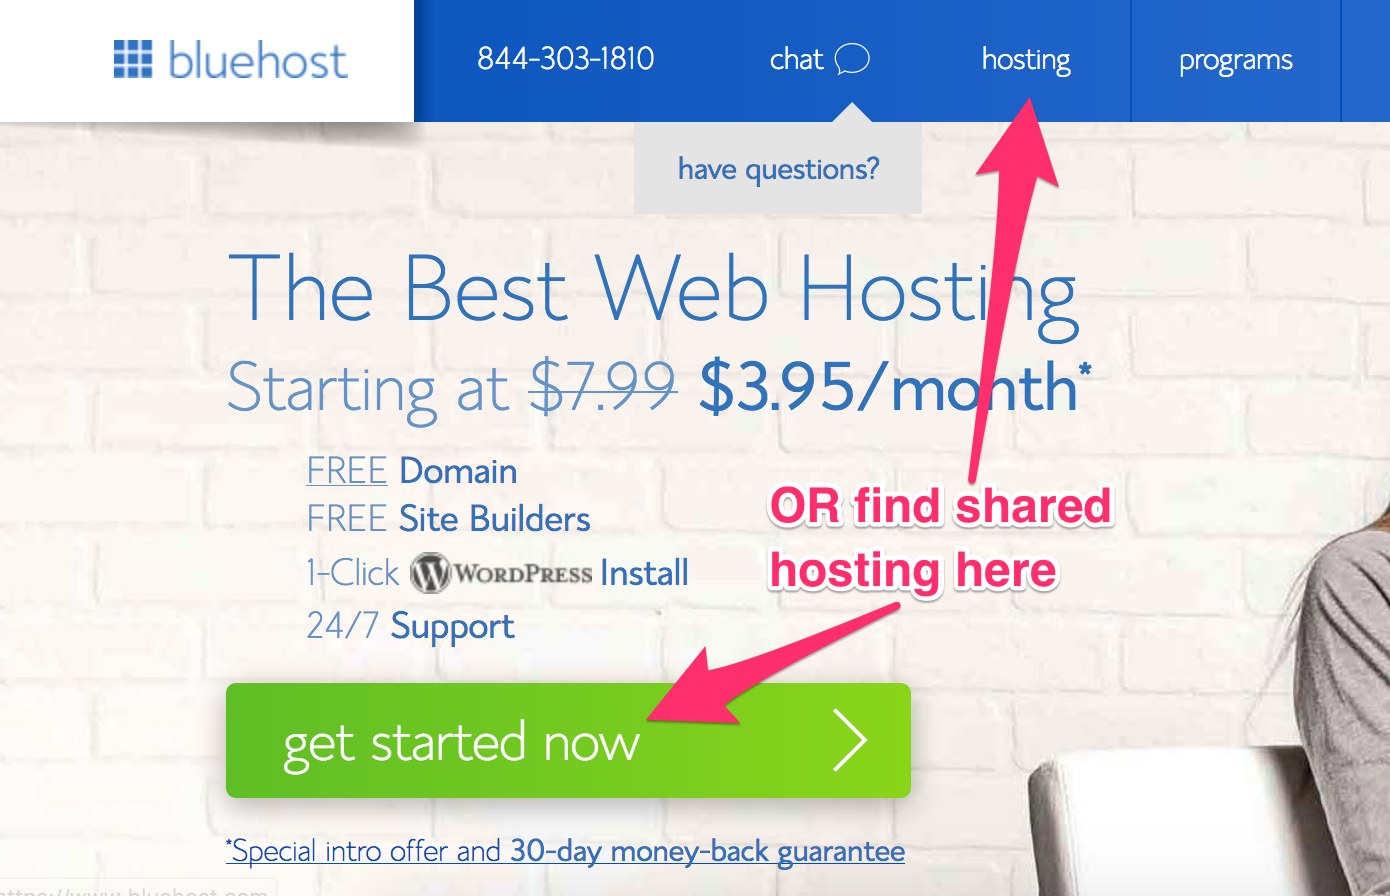 Launching a new site with Bluehost